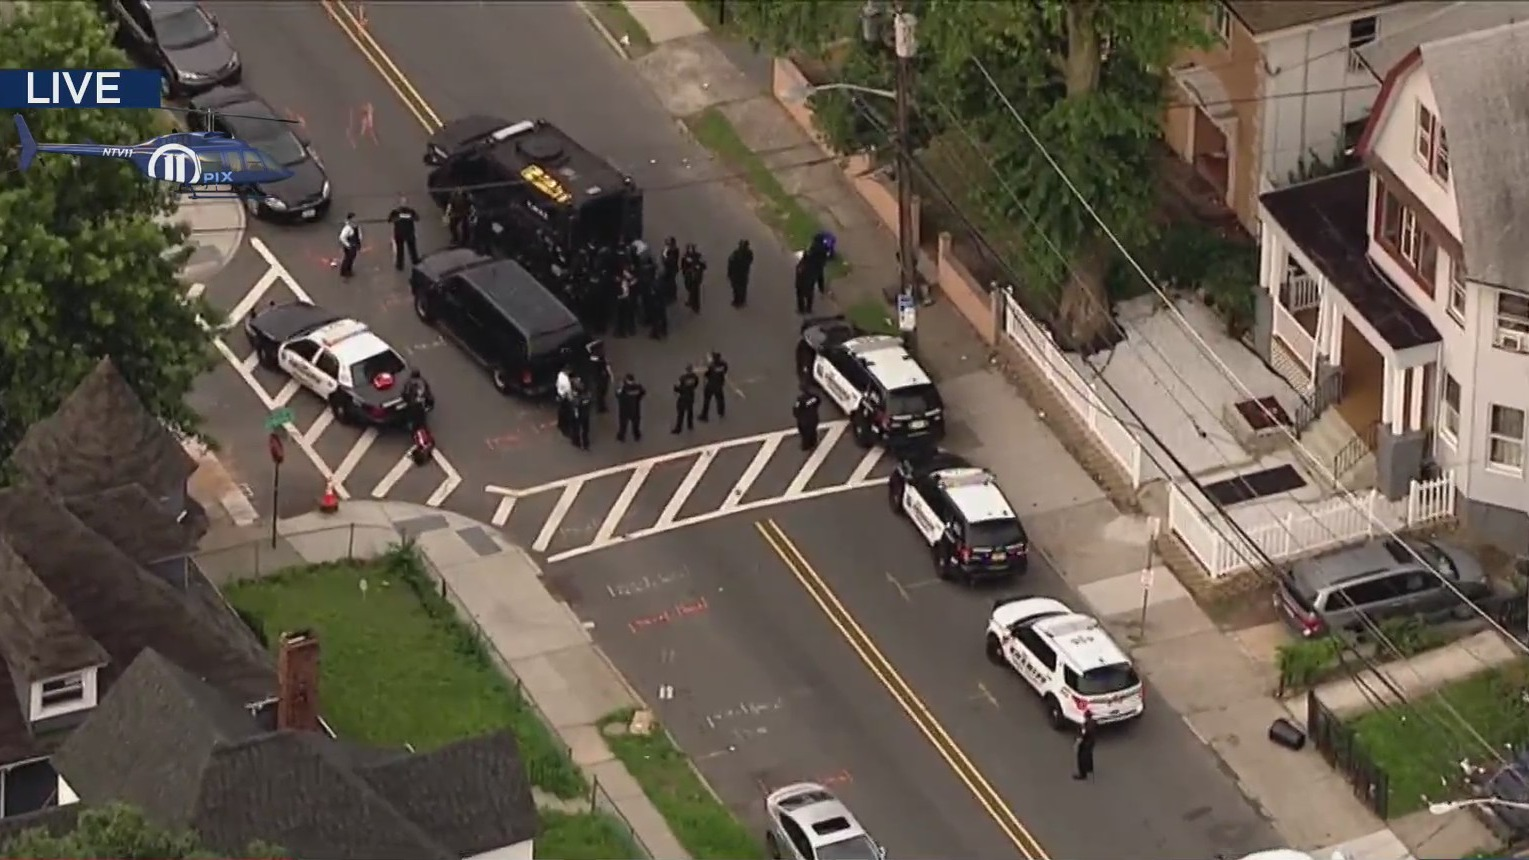 Large police presence in Newark, New Jersey